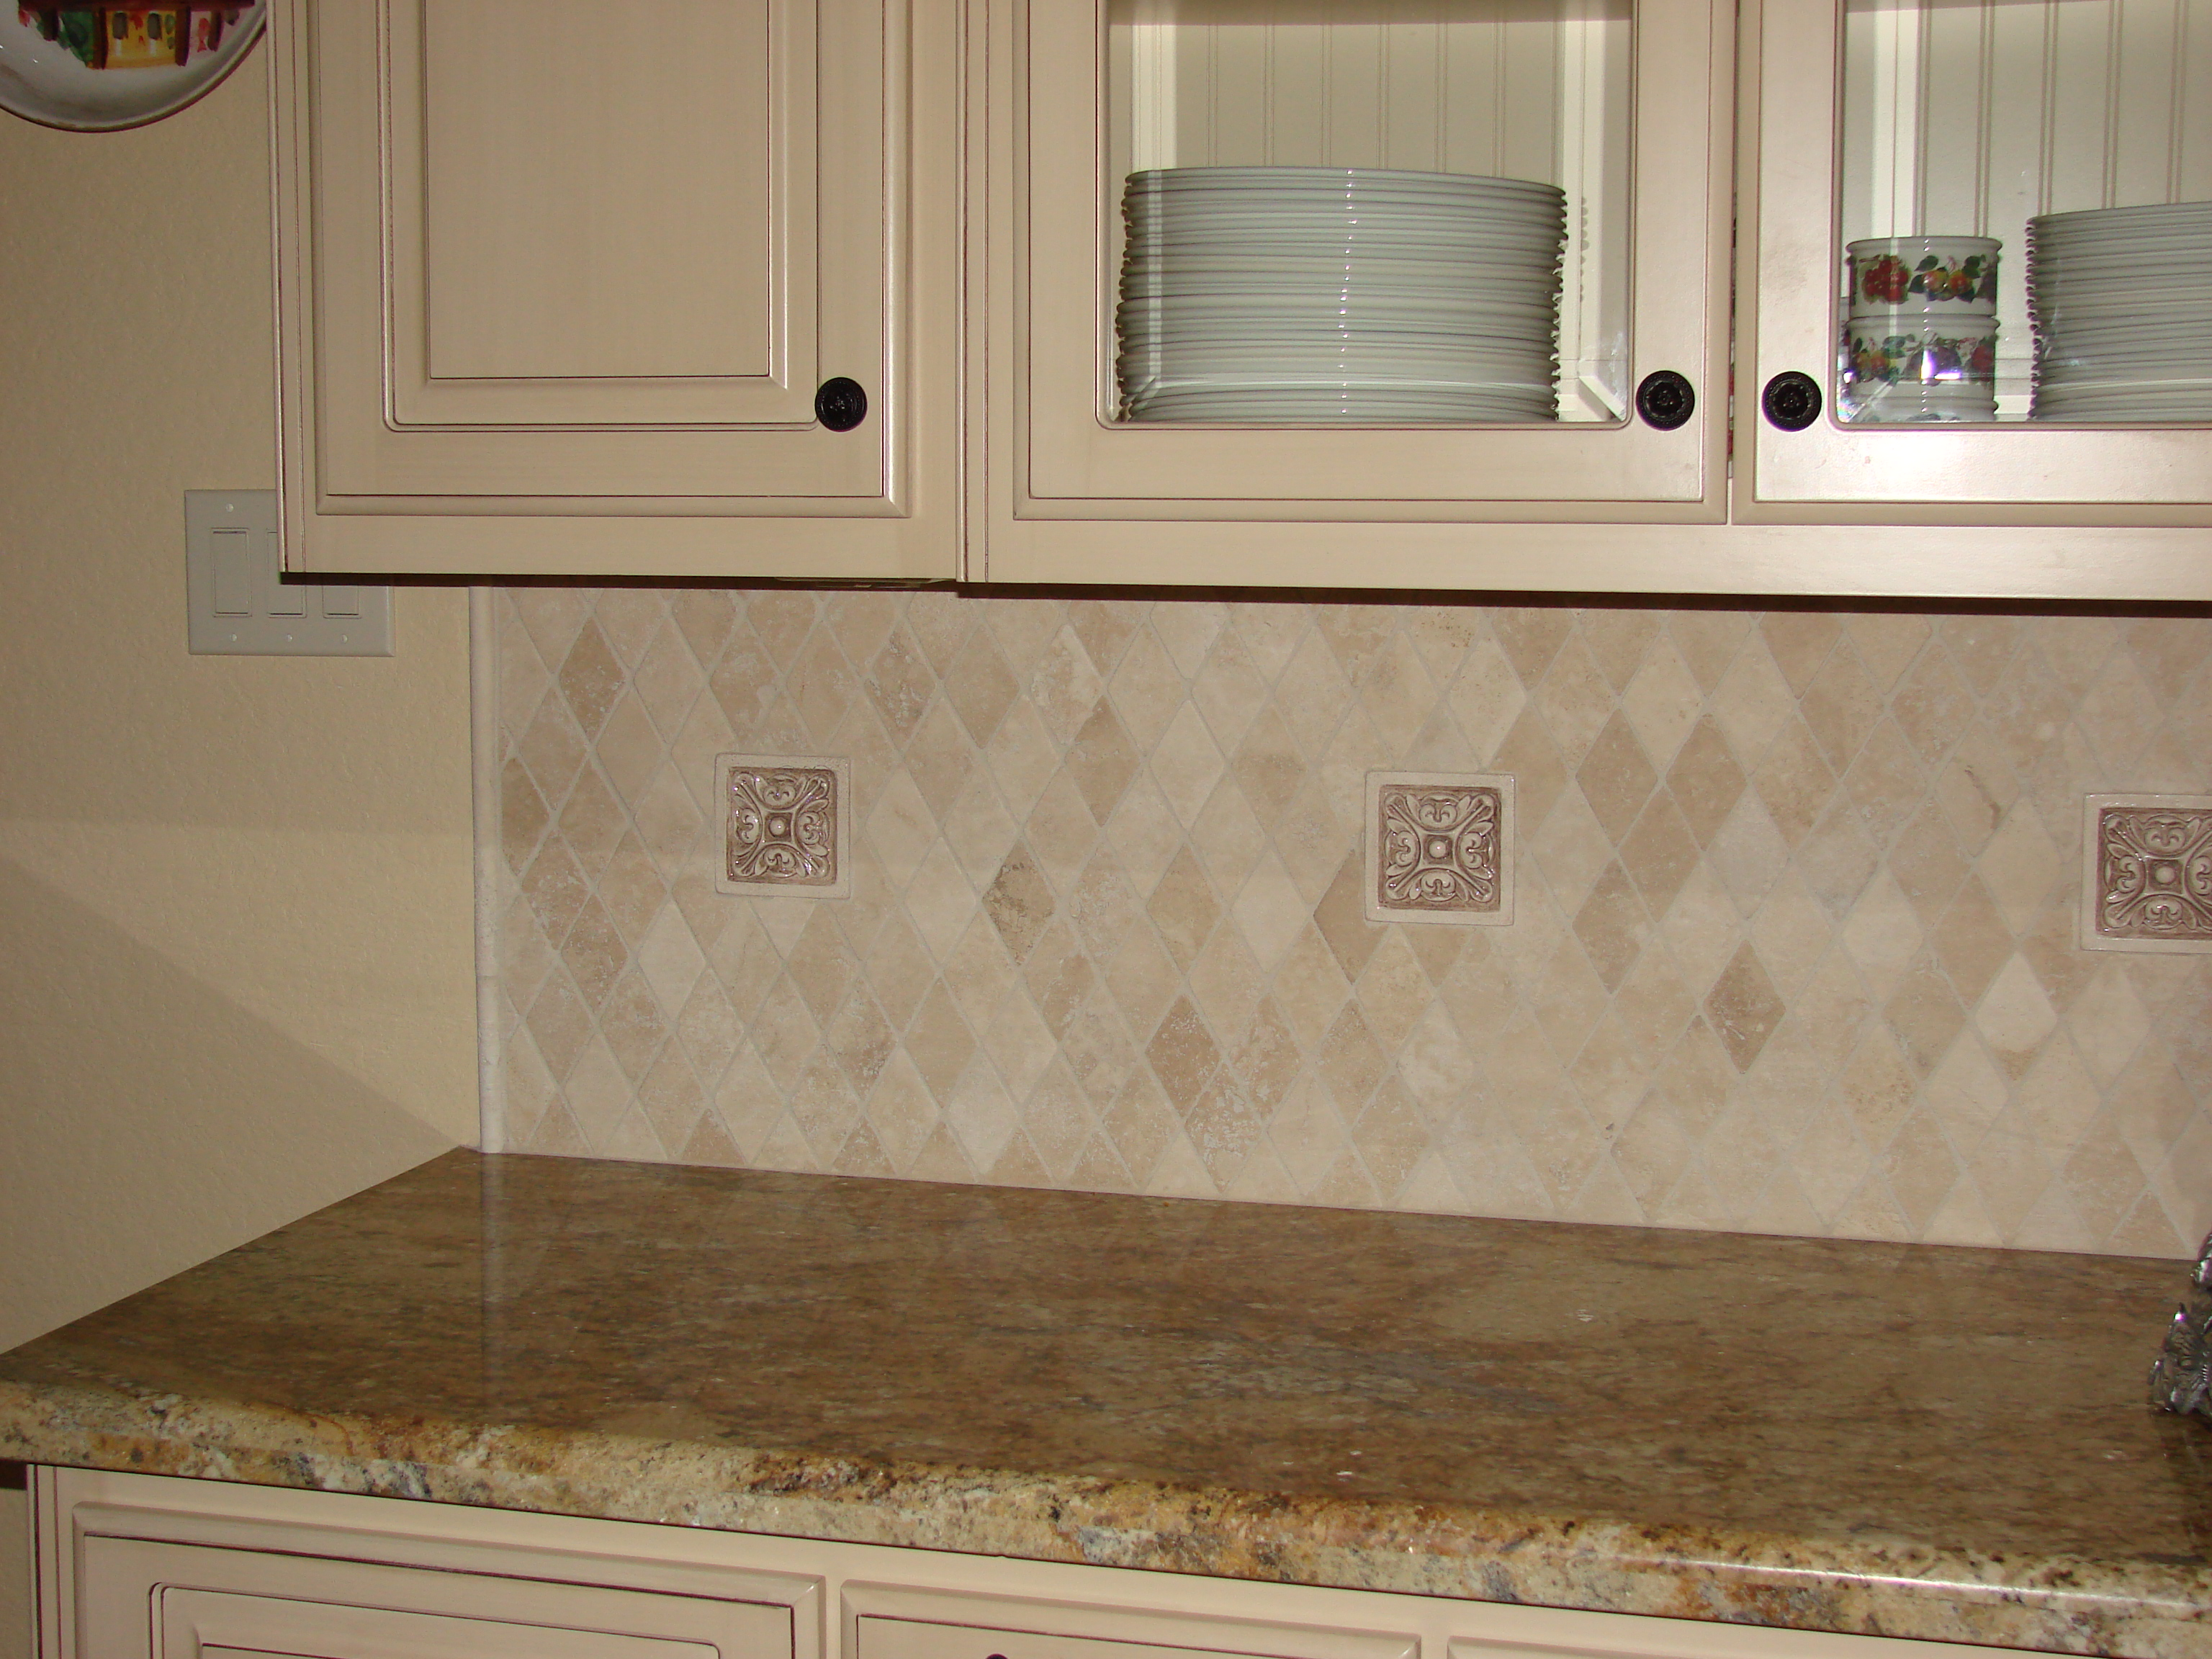 Small Relief Tiles Stone Insert Designs Kitchen